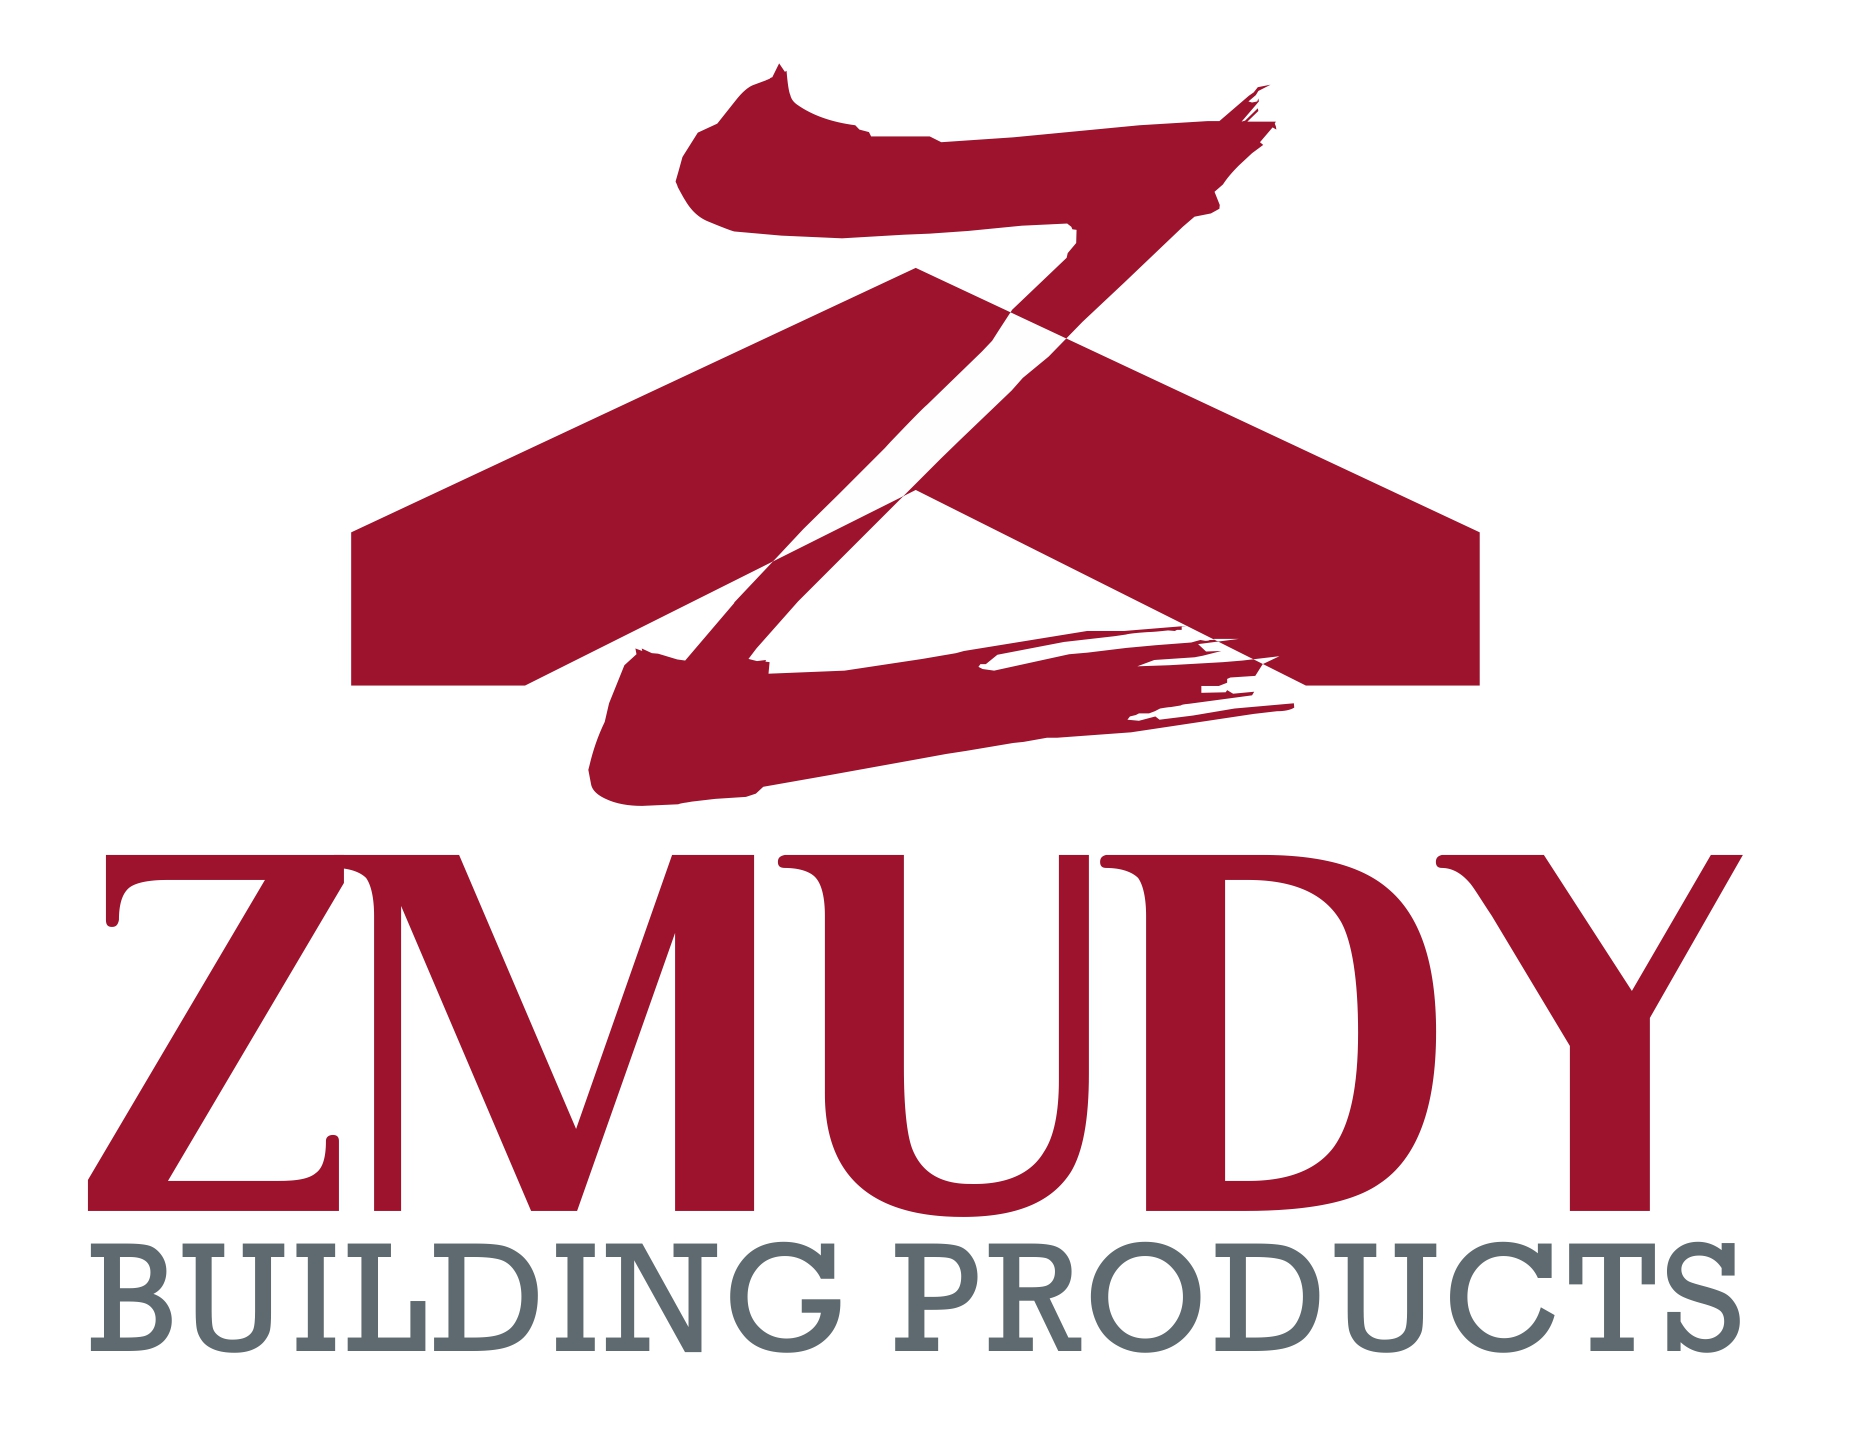 Zmudy building products exterior building products michigan for Exterior building products